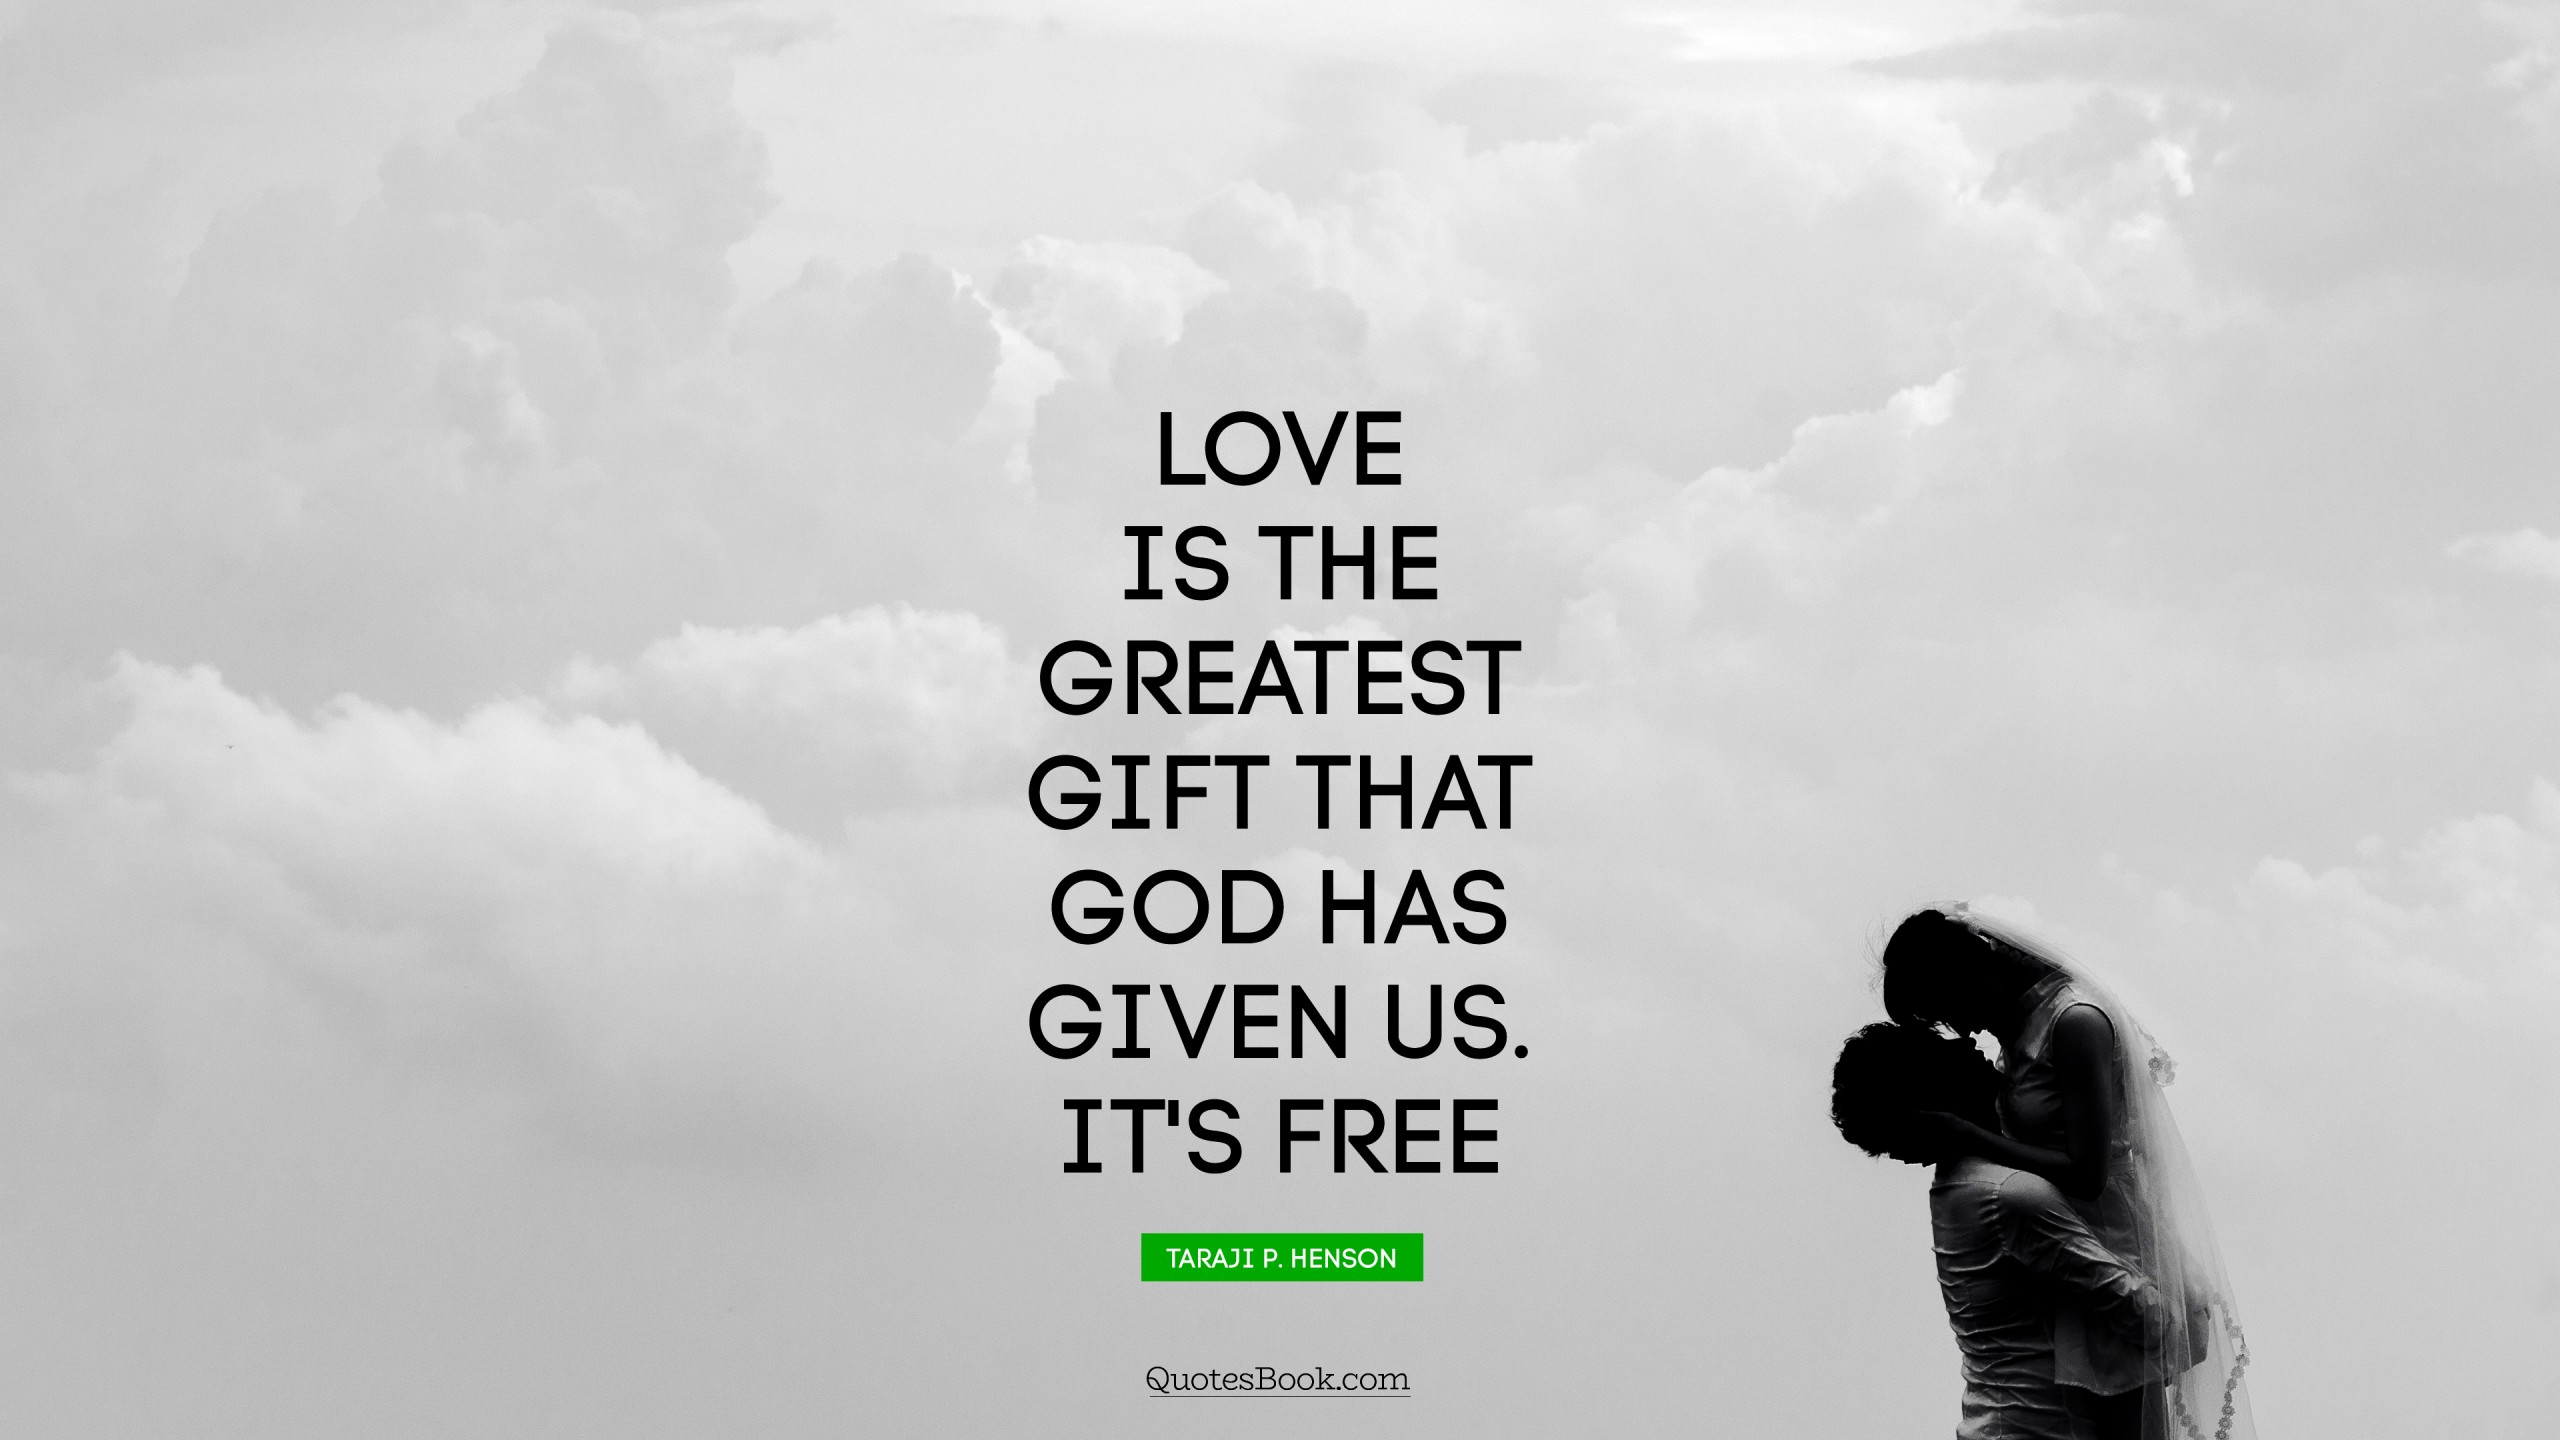 Love is the greatest gift that God has given us. Its free